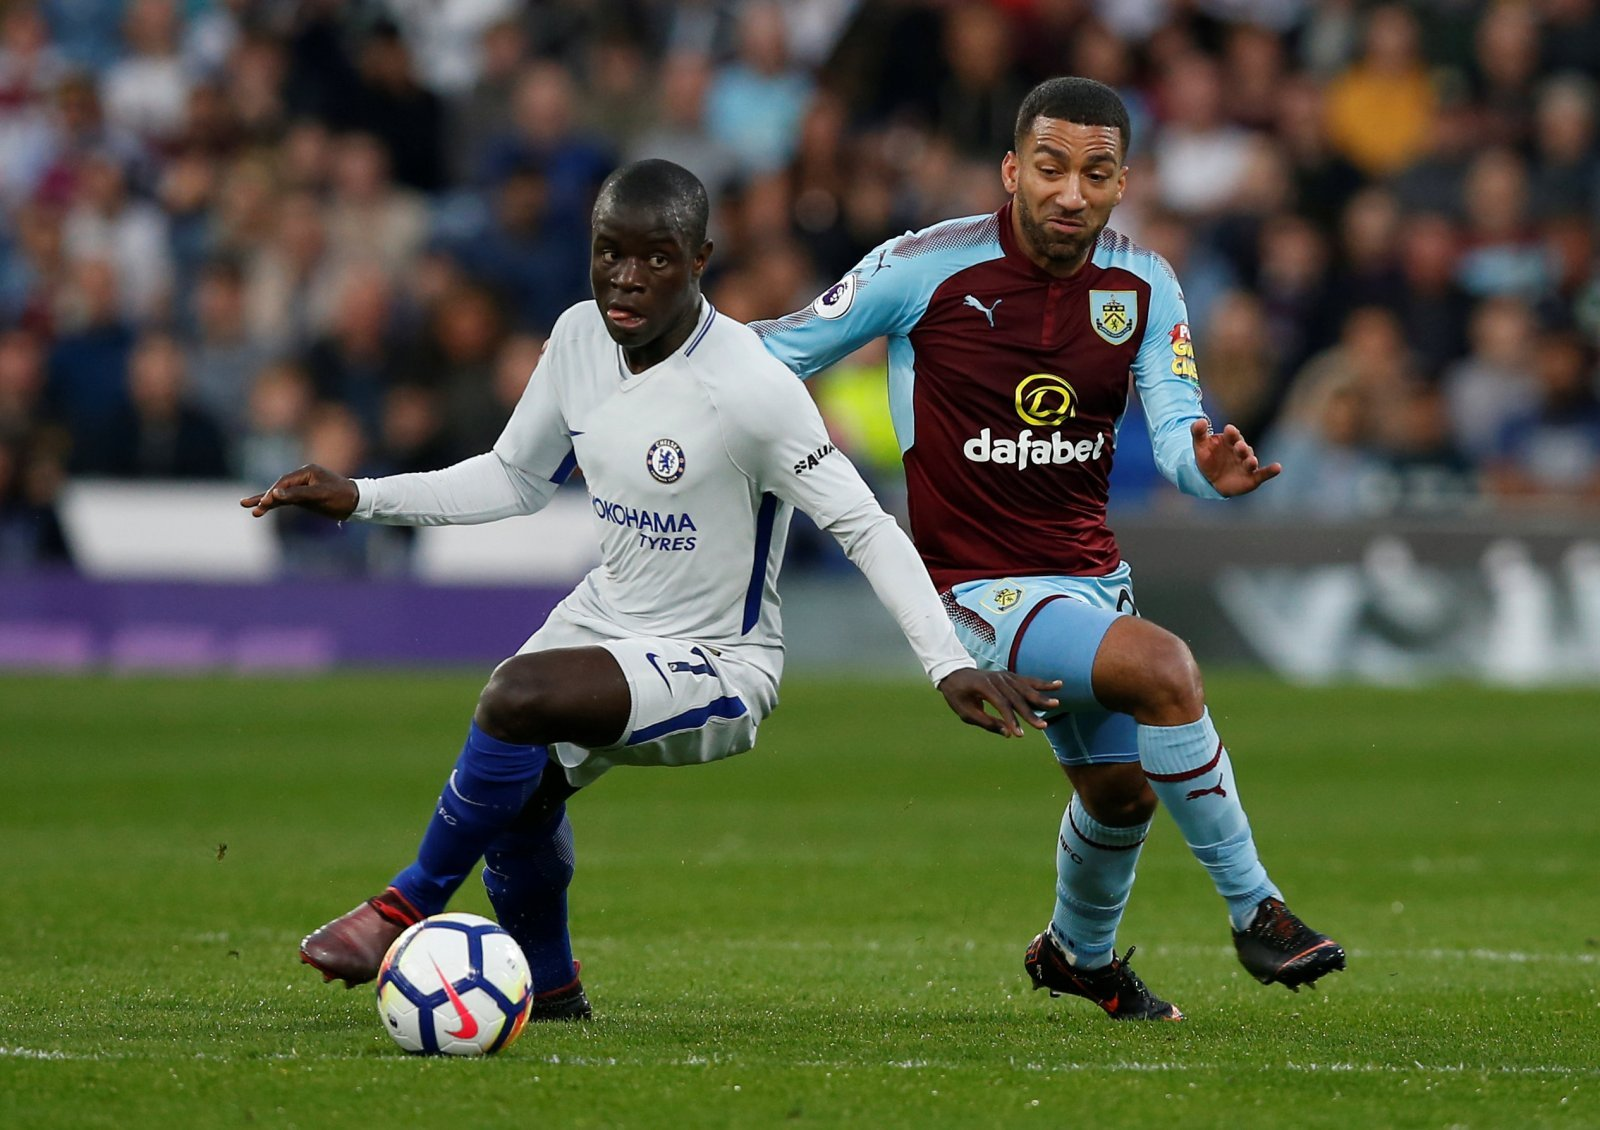 Sarri simply has to get Kante back to doing what he does best to get Chelsea season back on track